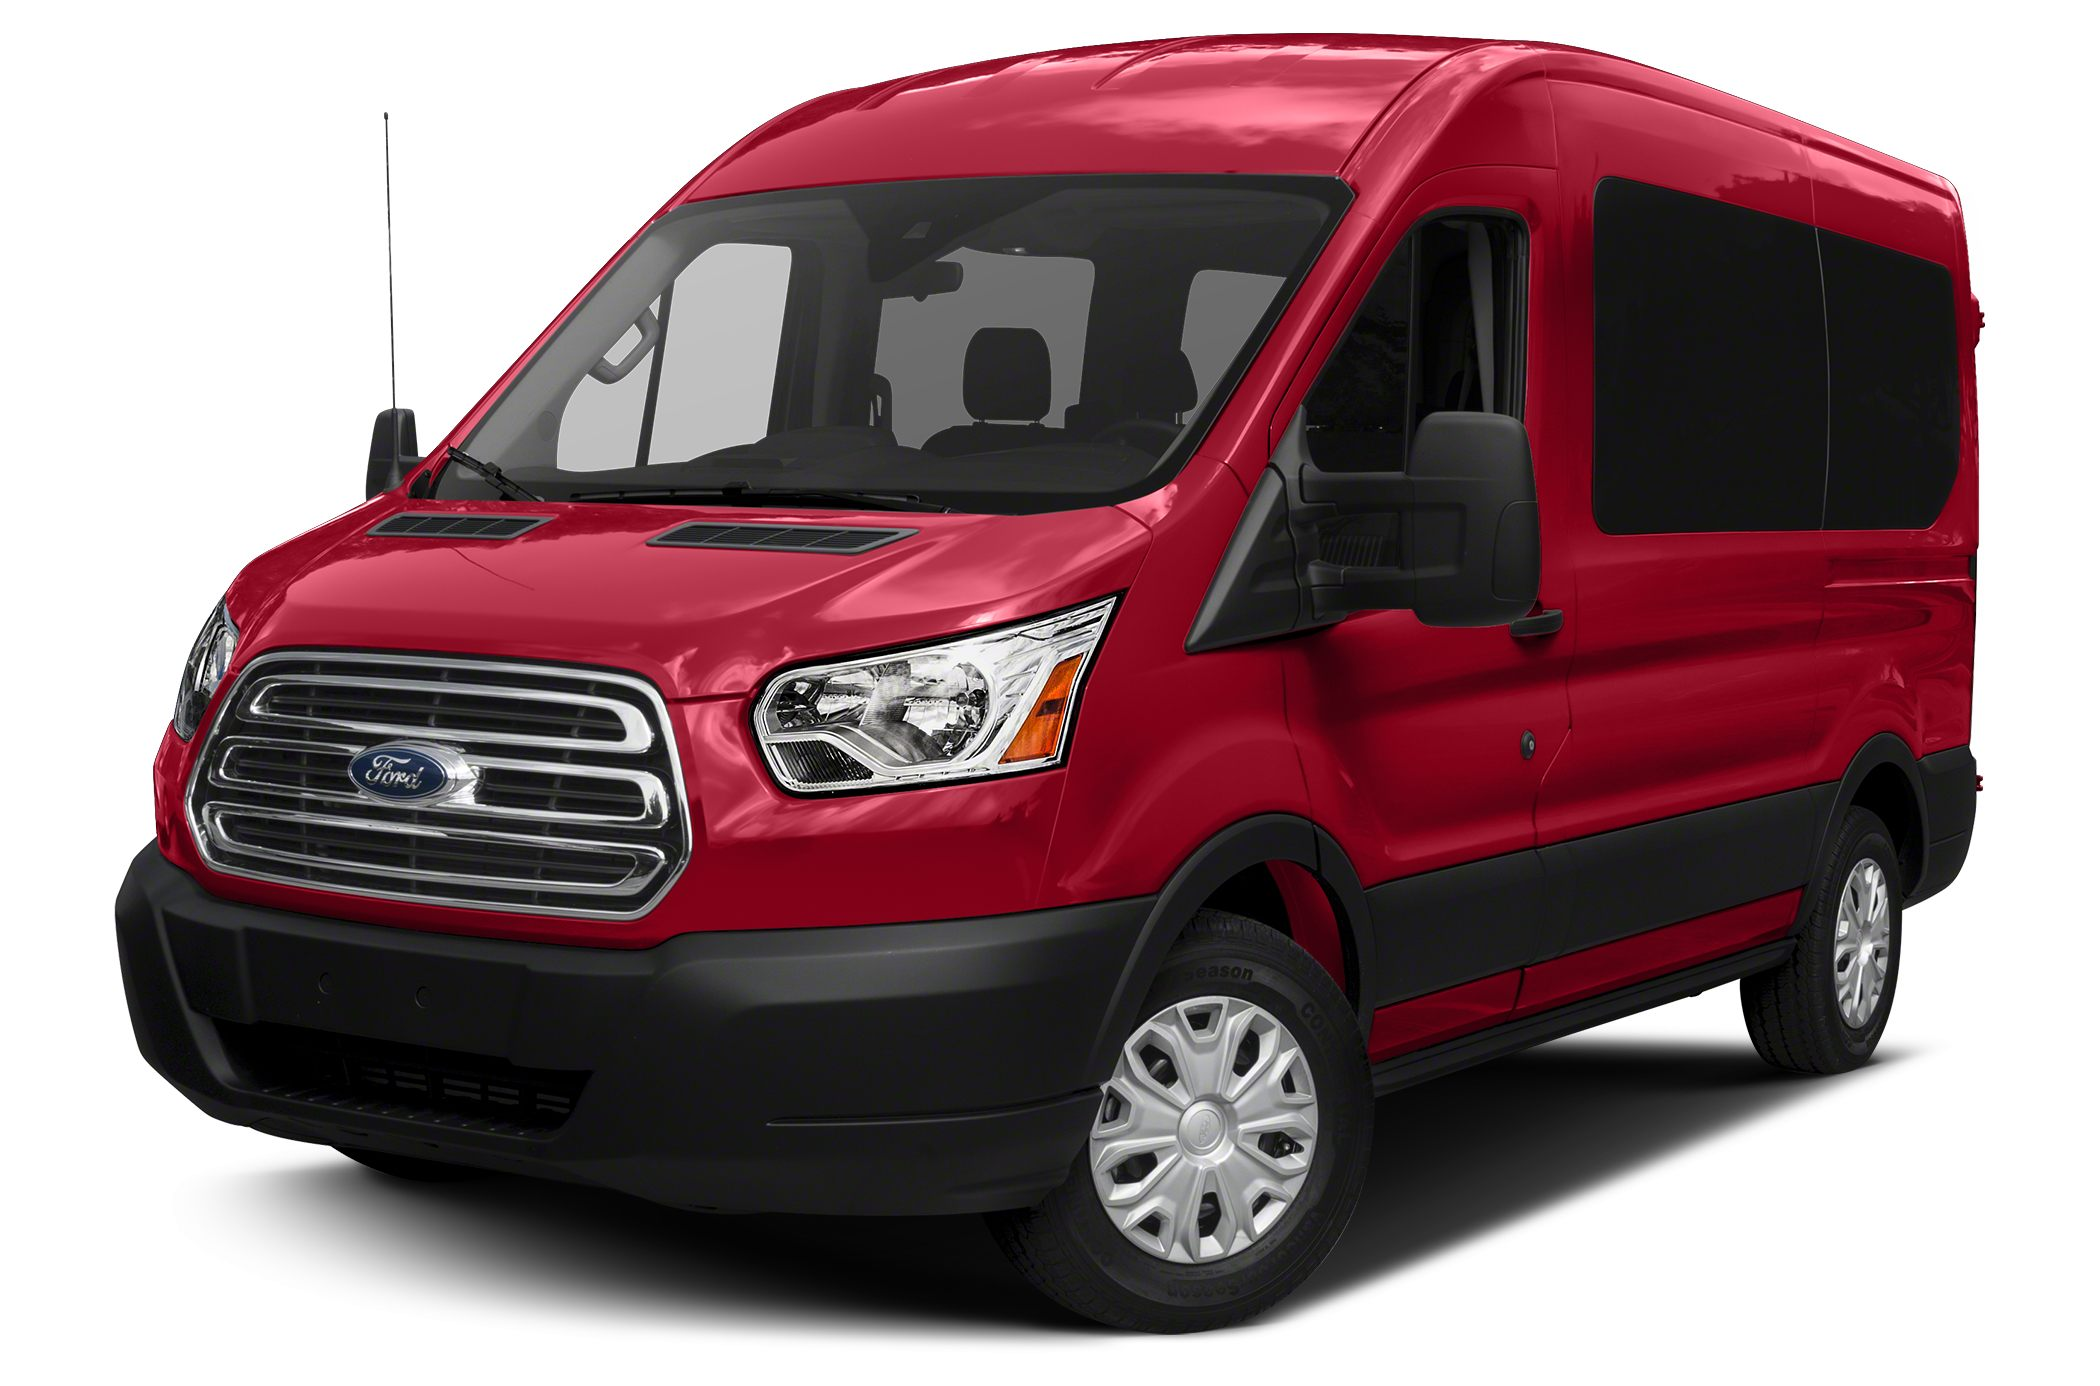 2017 Ford Transit 150 Cargo Van >> 2017 Ford Transit 150 Xlt W Sliding Pass Side Cargo Door Medium Roof Wagon 129 9 In Wb Pictures